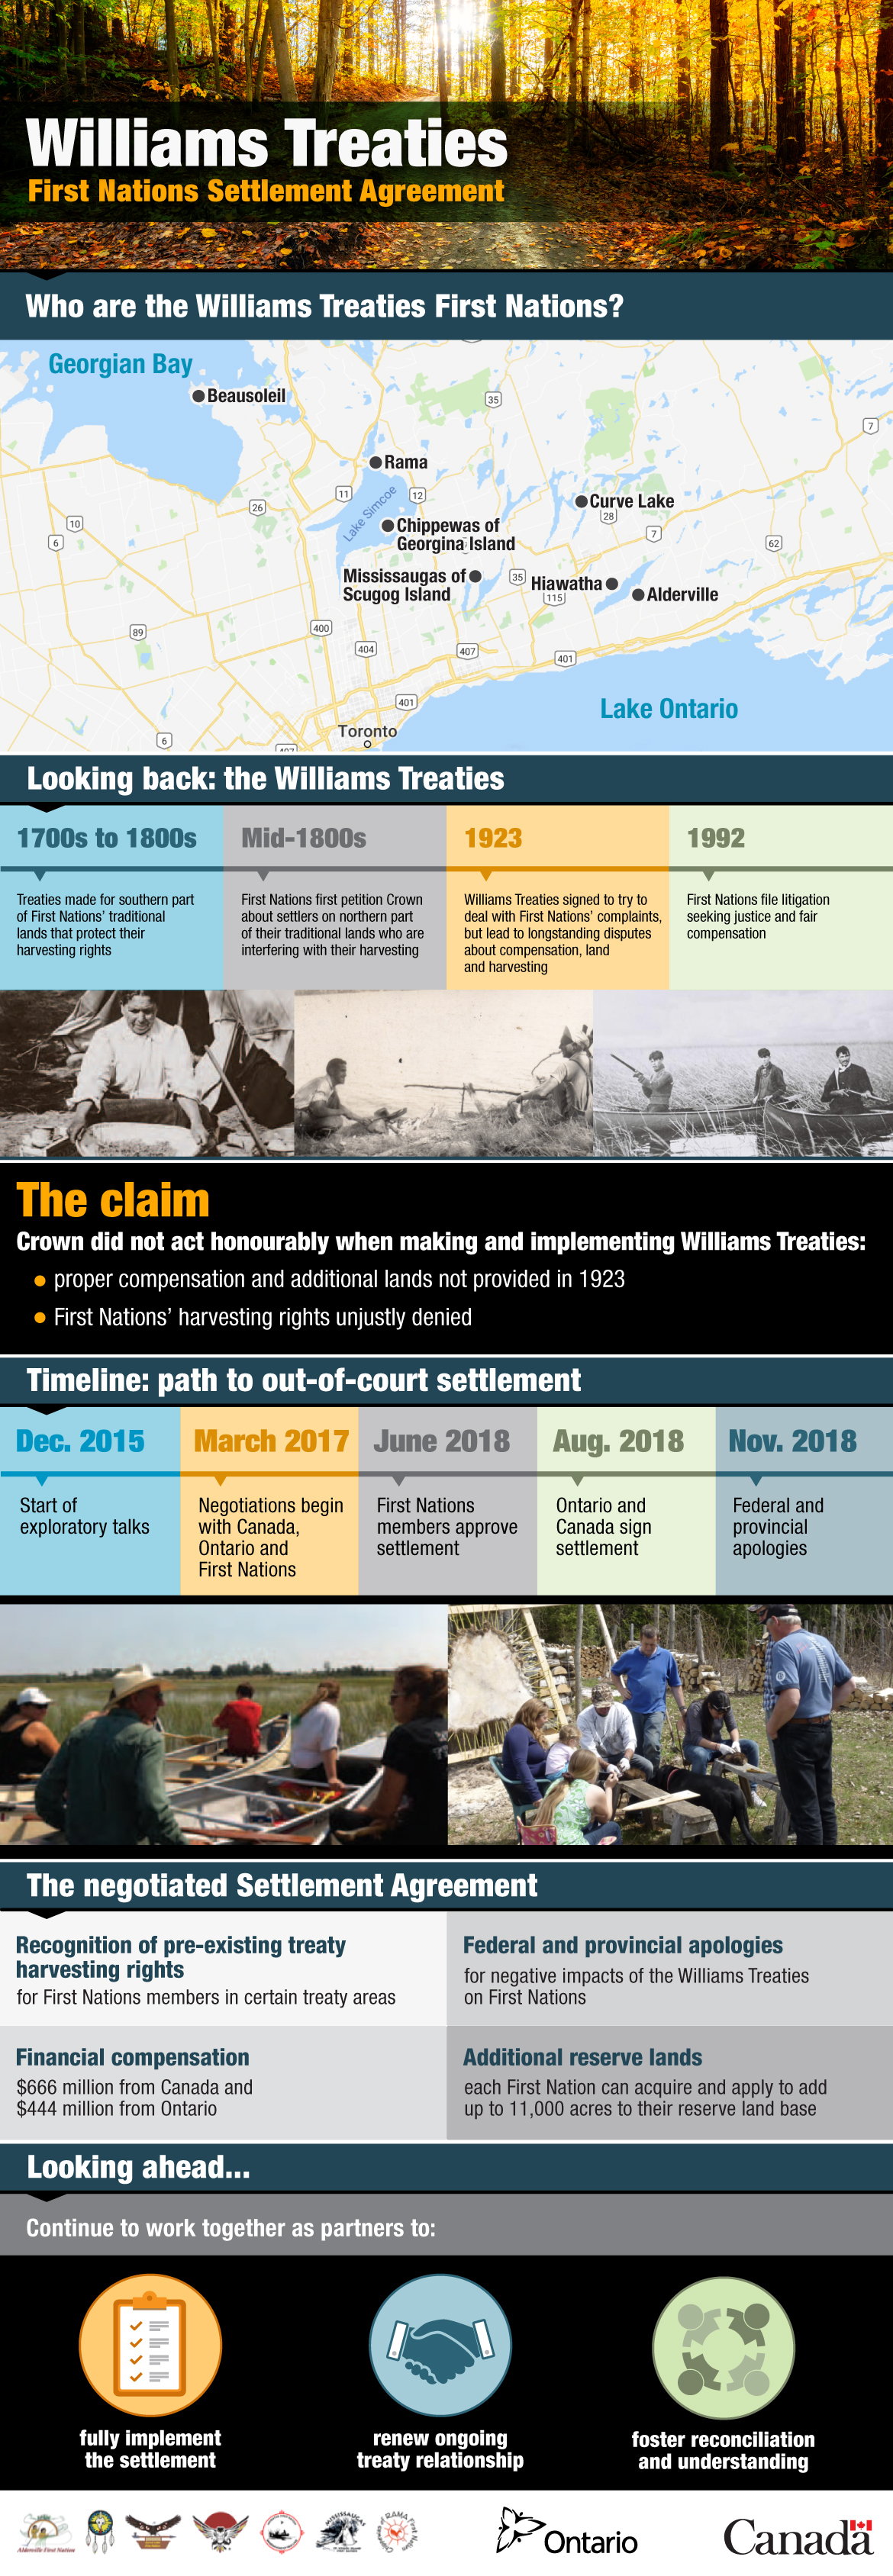 Williams Treaties First Nations Settlement Agreement